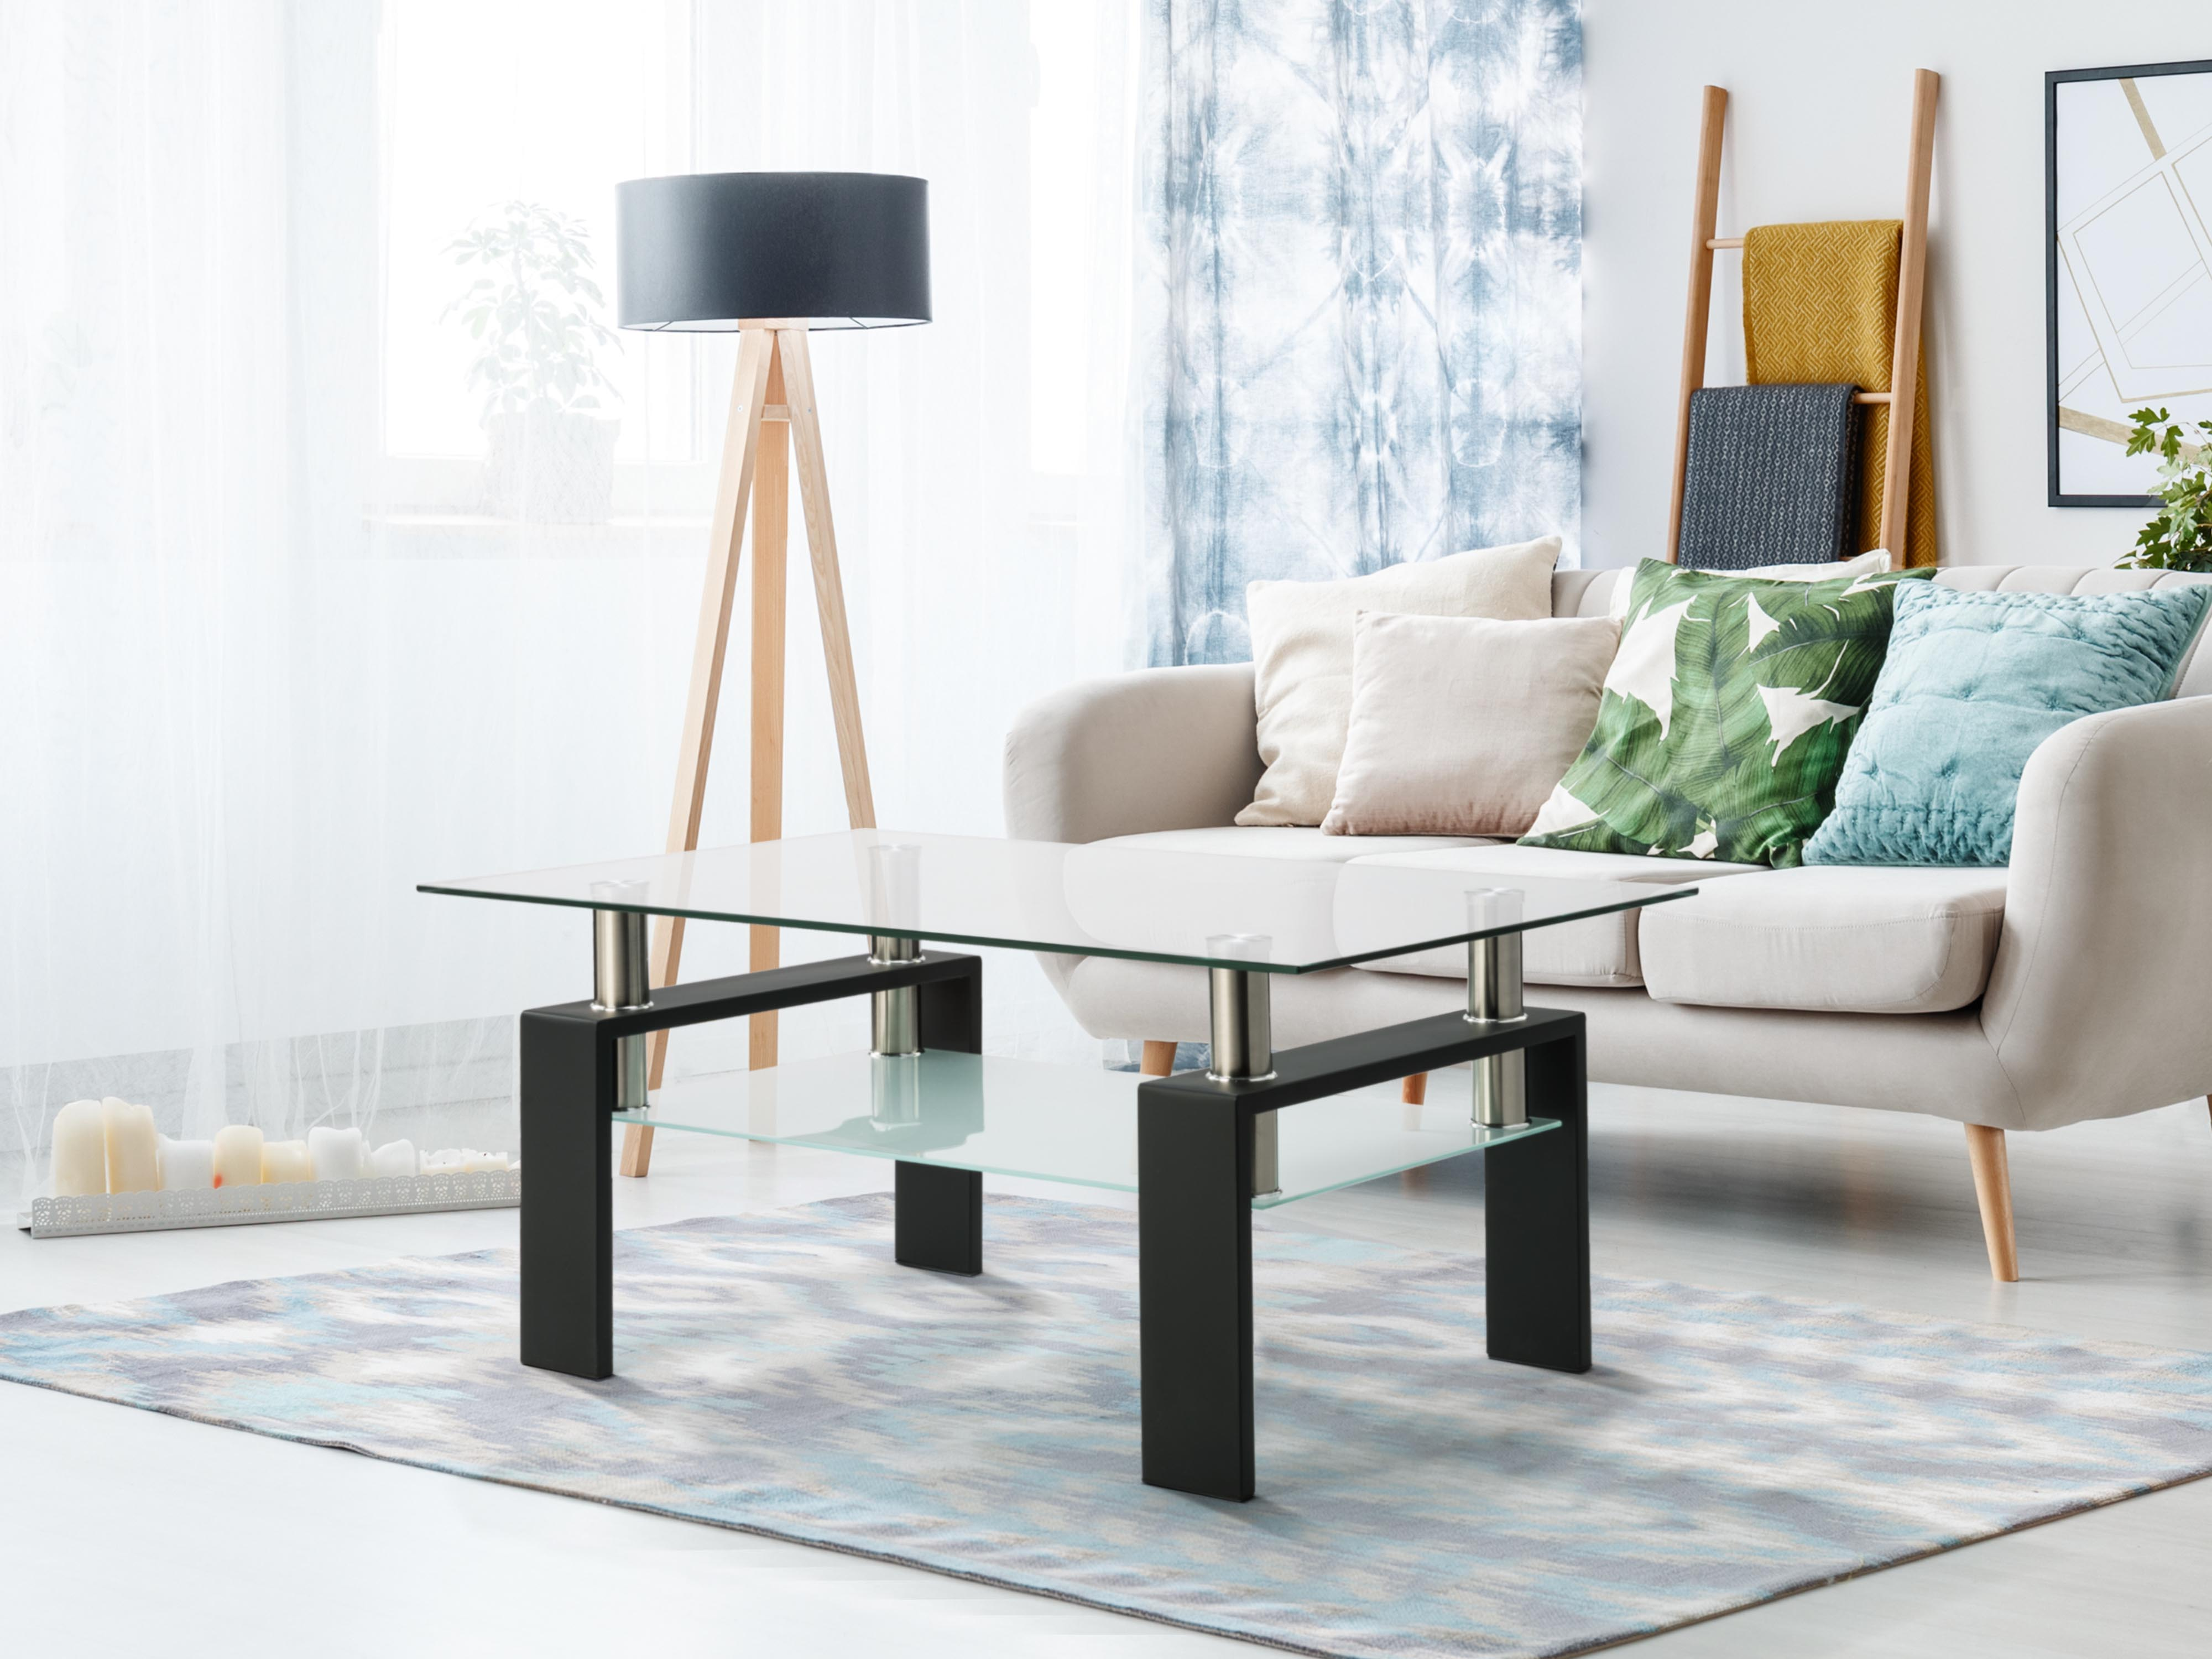 glass coffee table living room double layer square rectangle clear tea table modern side center tables for house furniture